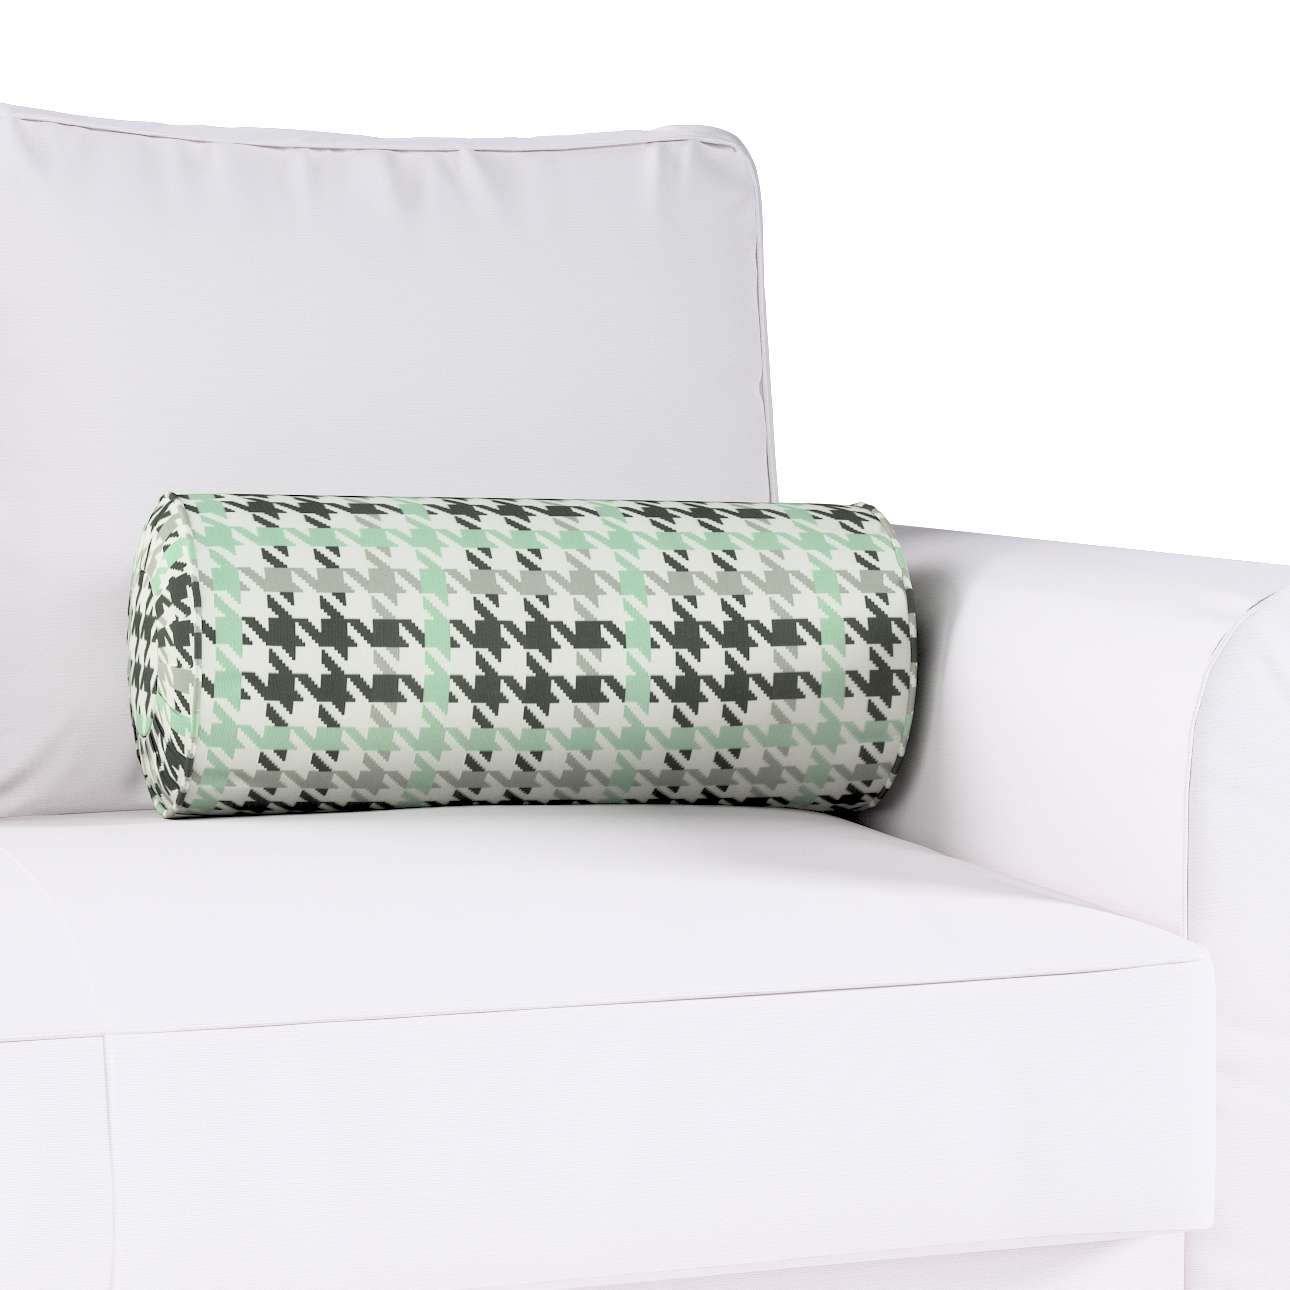 Bolster cushion with pleats Ø 20 x 50 cm (8 x 20 inch) in collection Brooklyn, fabric: 137-77